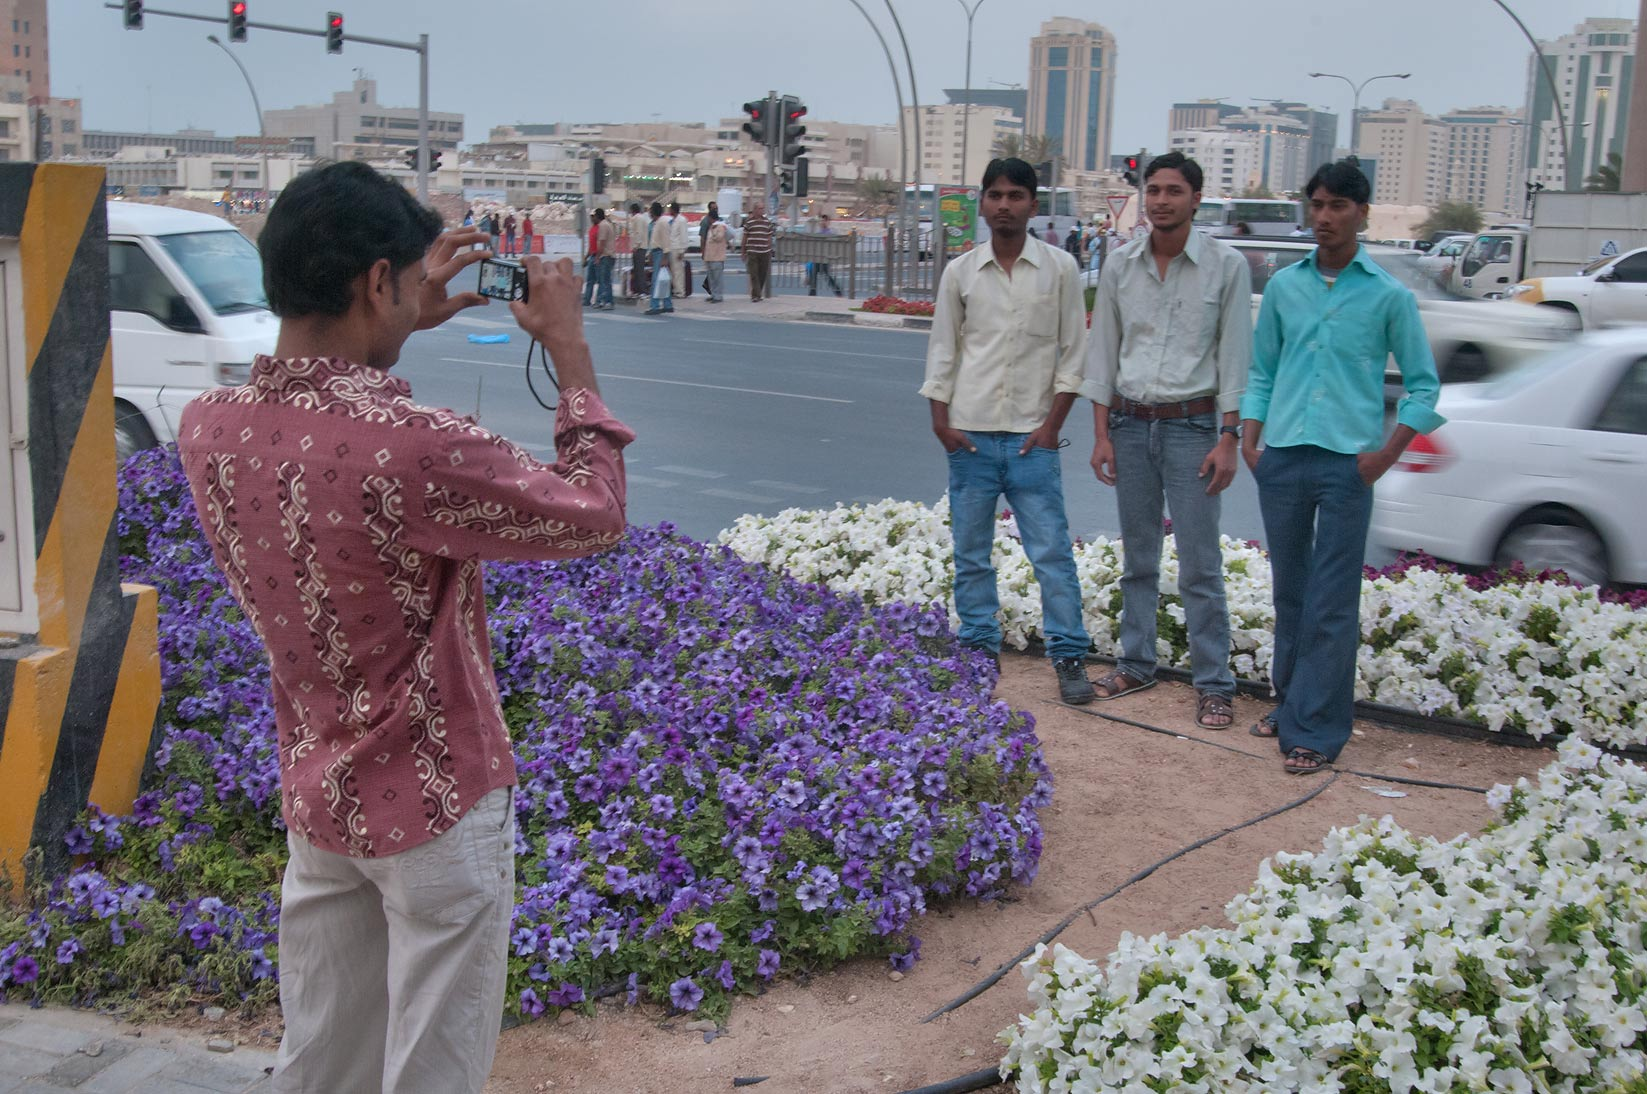 Popular place for migrant workers to take...Al Ghanim on Friday. Doha, Qatar